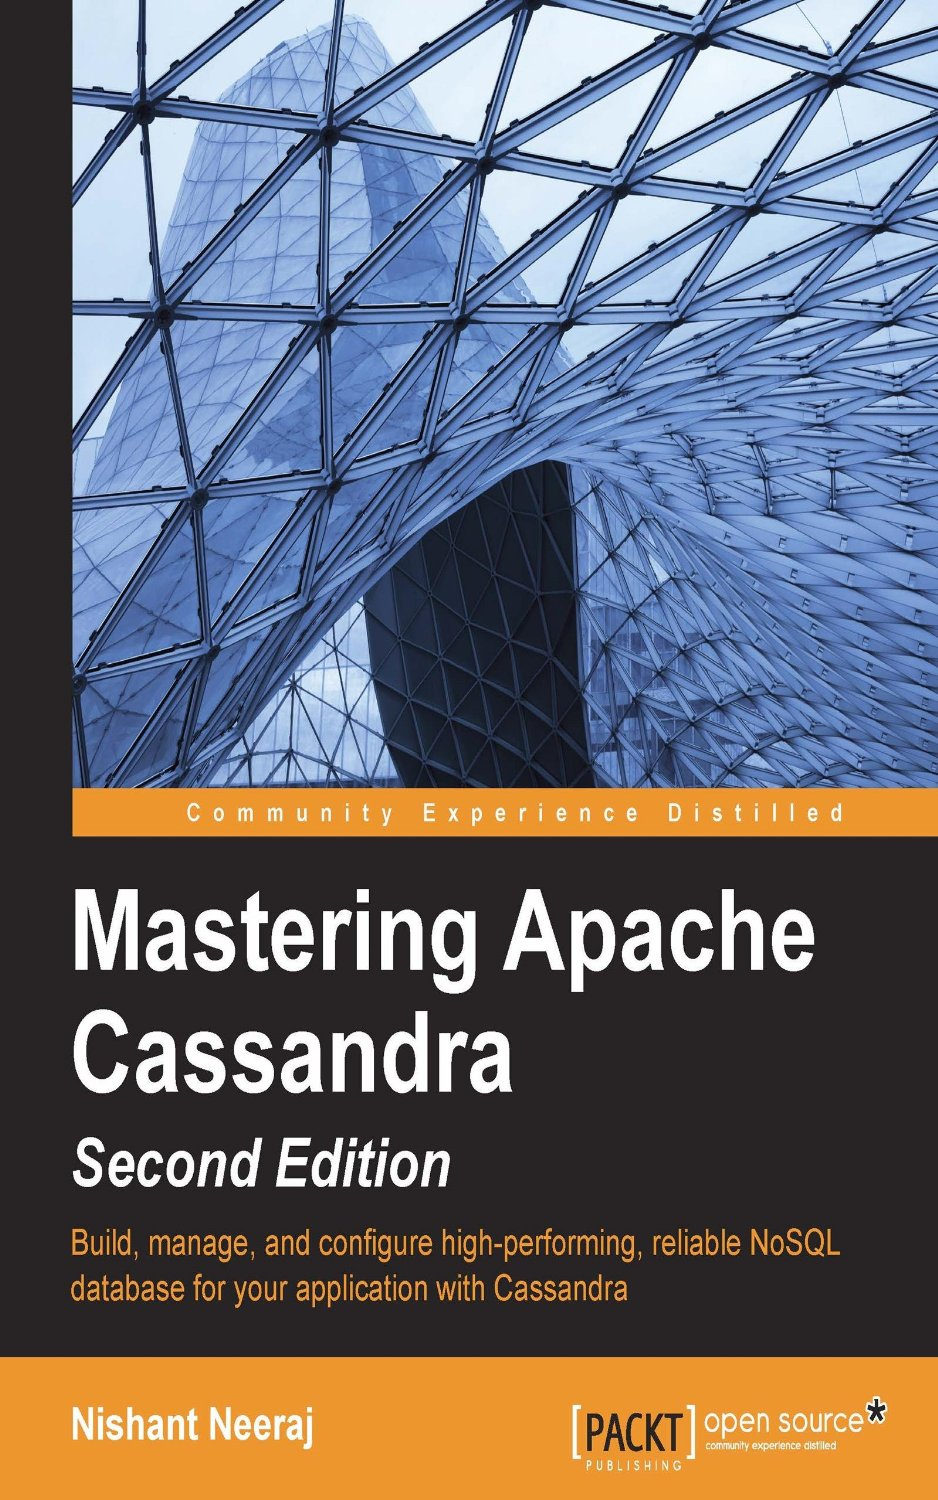 Mastering Apache Cassandra - Second Edition free download